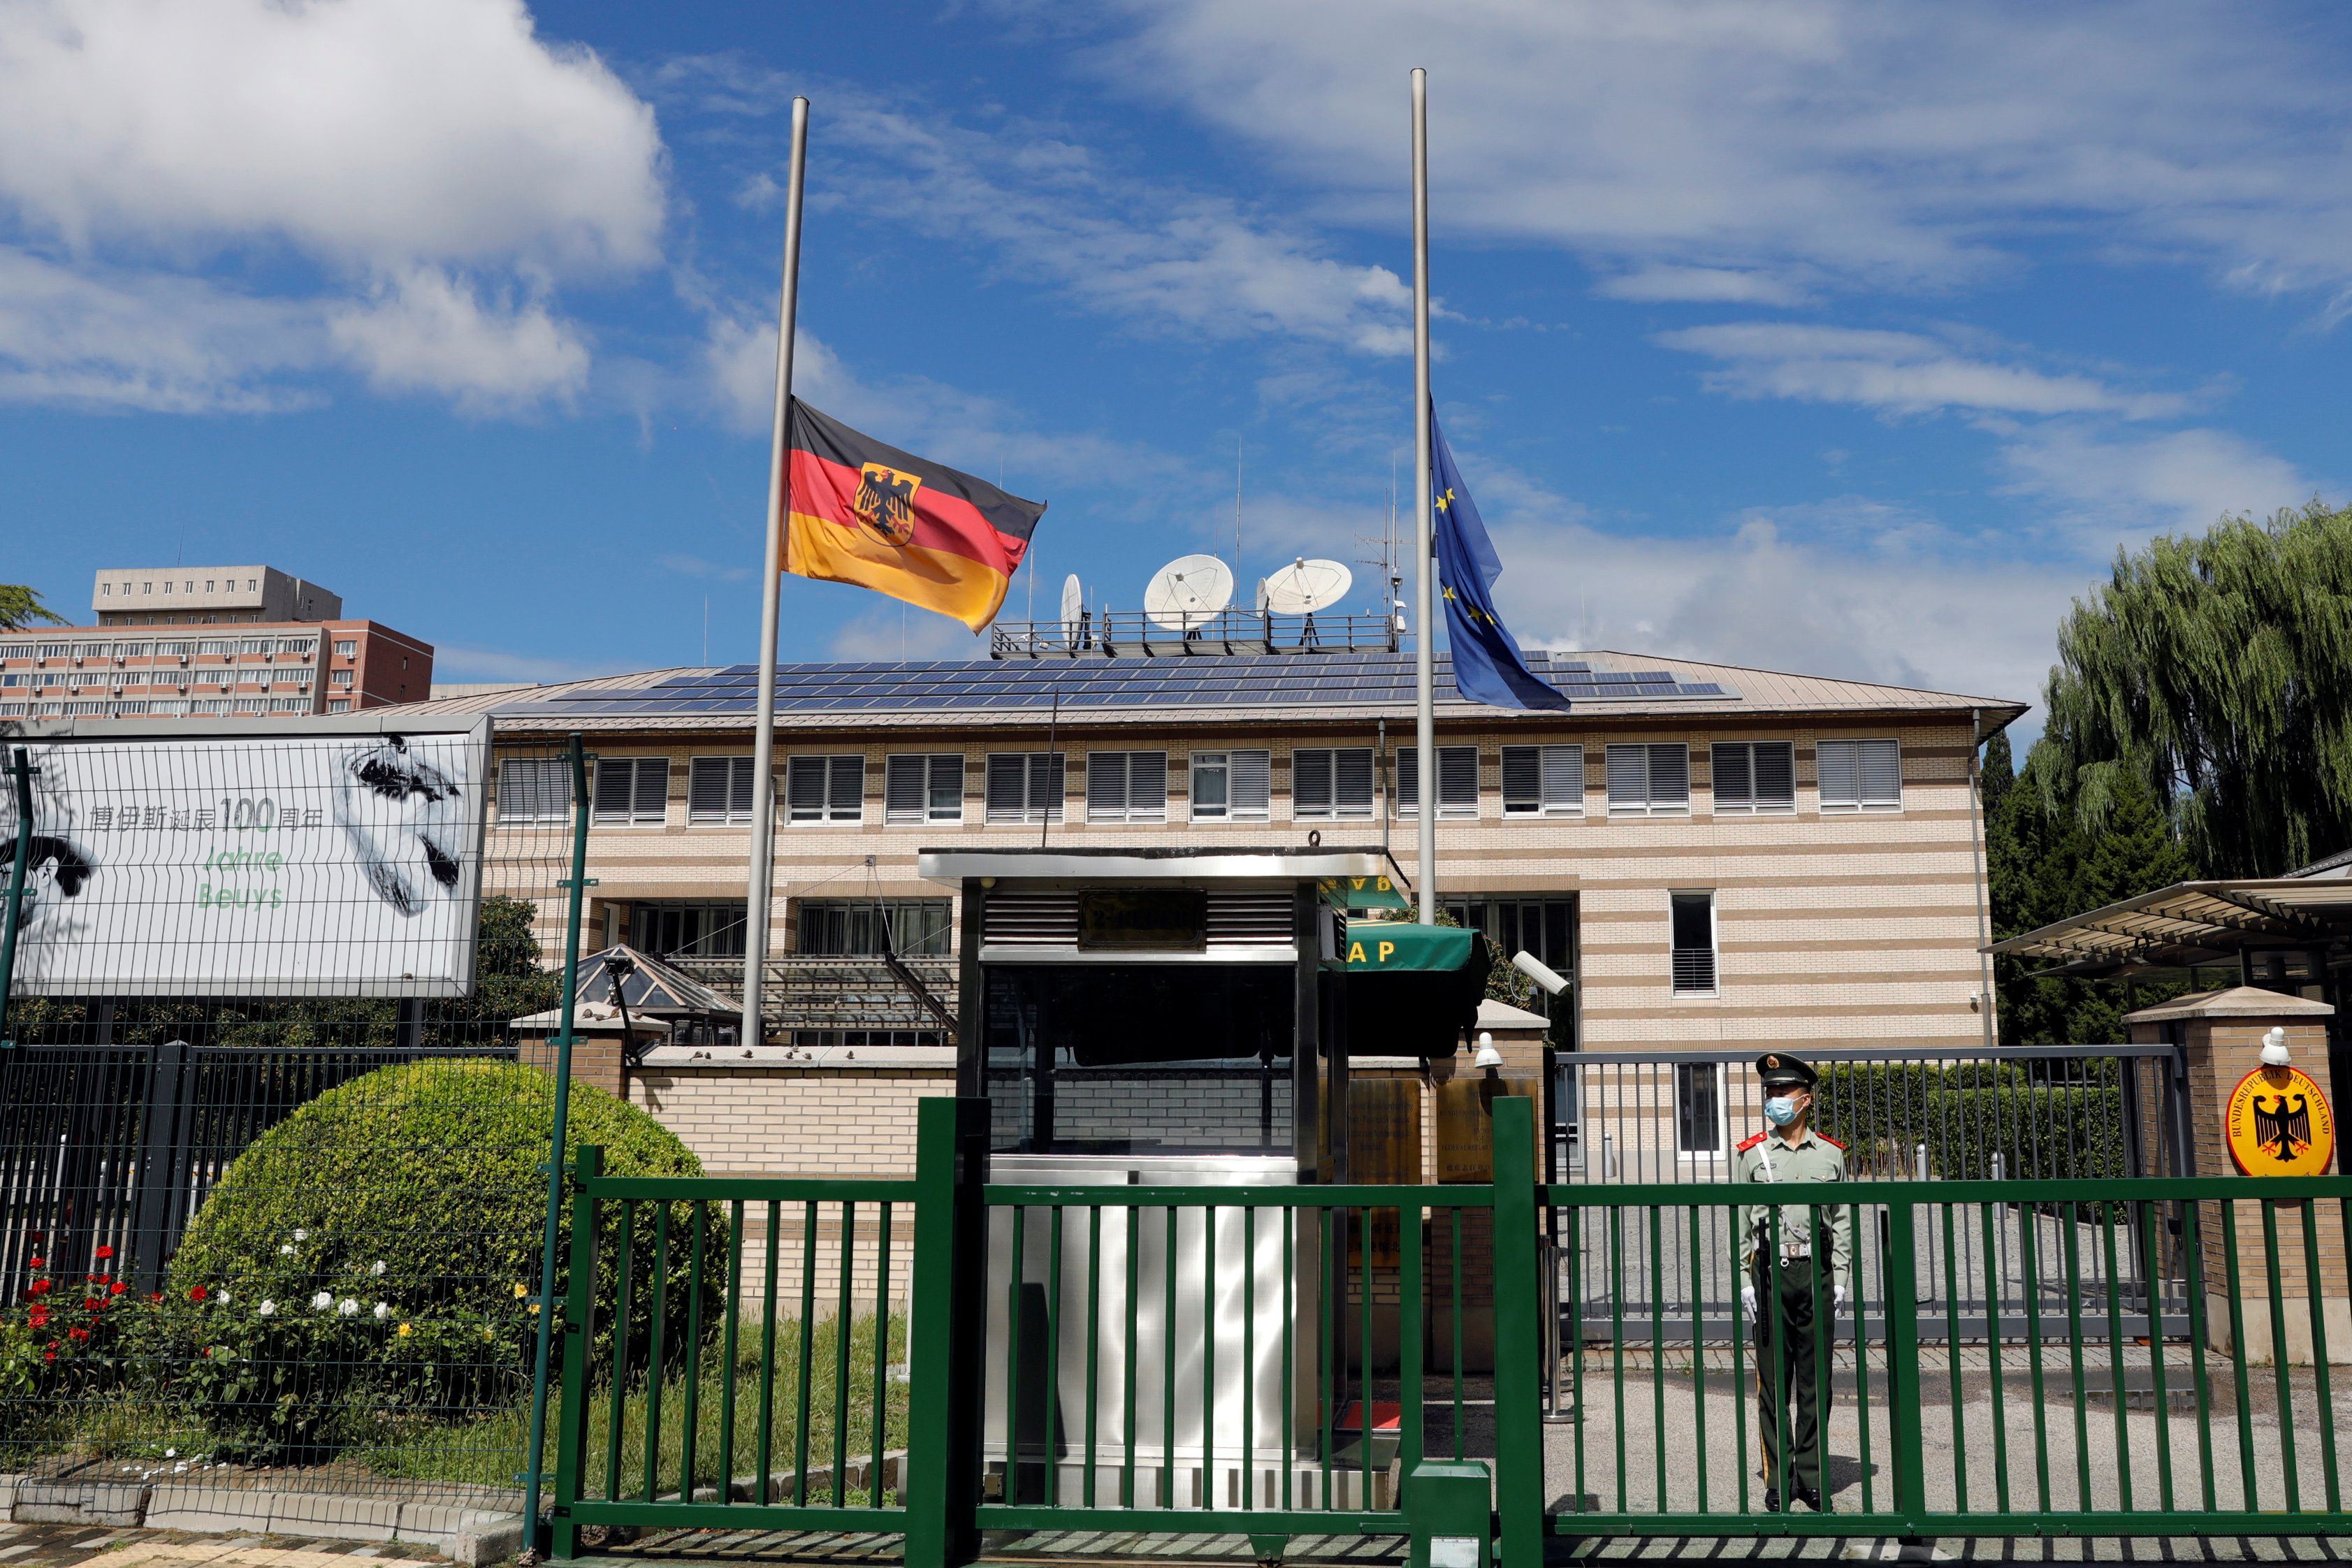 The German and European Union flags fly at half mast after German ambassador to China Jan Hecker passed away, at the Germany embassy in Beijing, China September 6, 2021. REUTERS/Carlos Garcia Rawlins